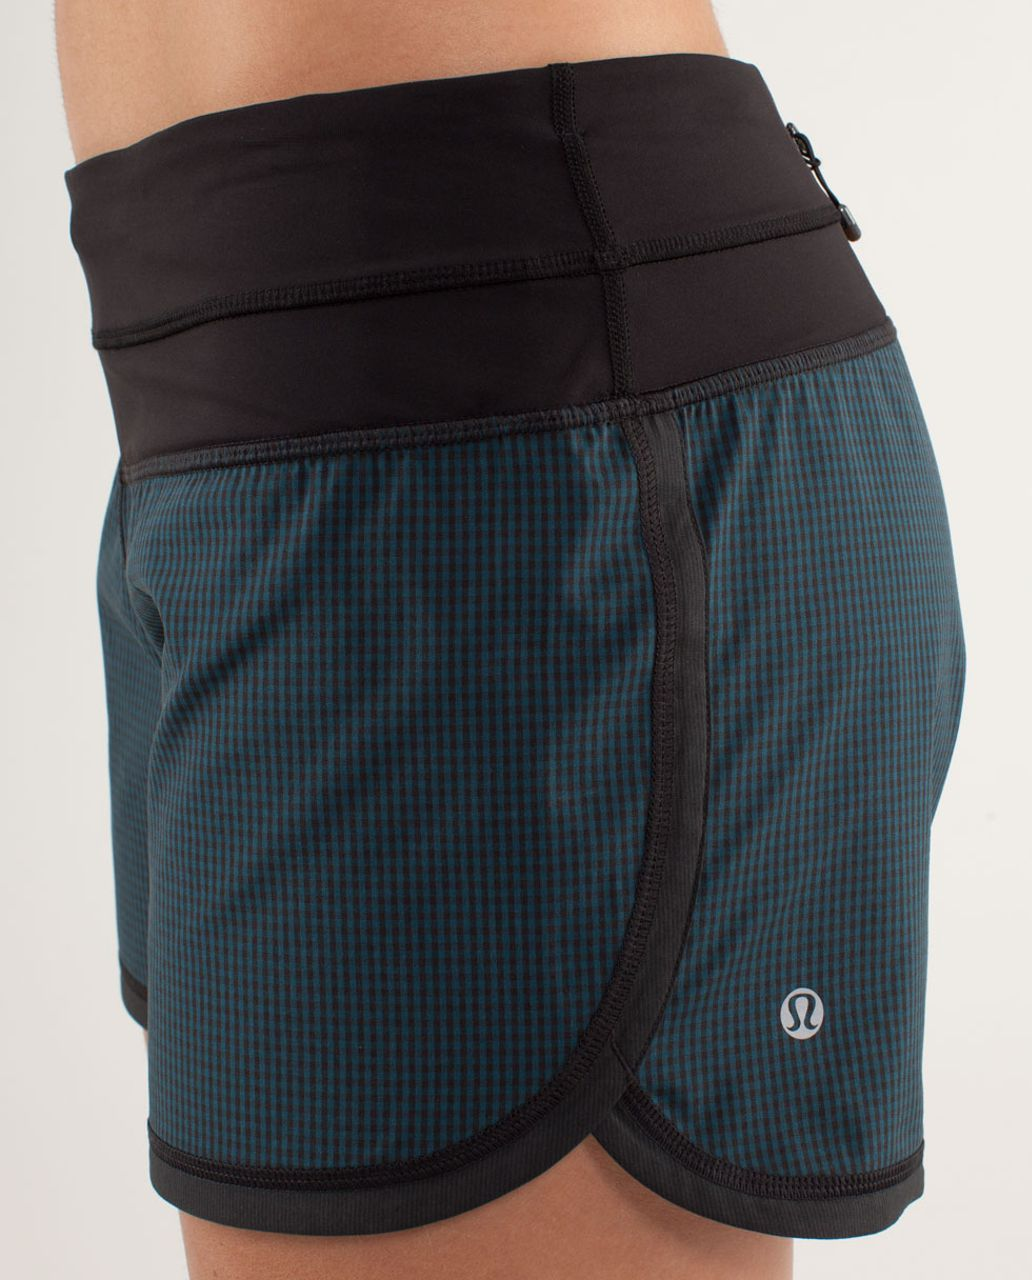 Lululemon Groovy Run Short - Eighth Gingham Alberta Lake Black  / Black